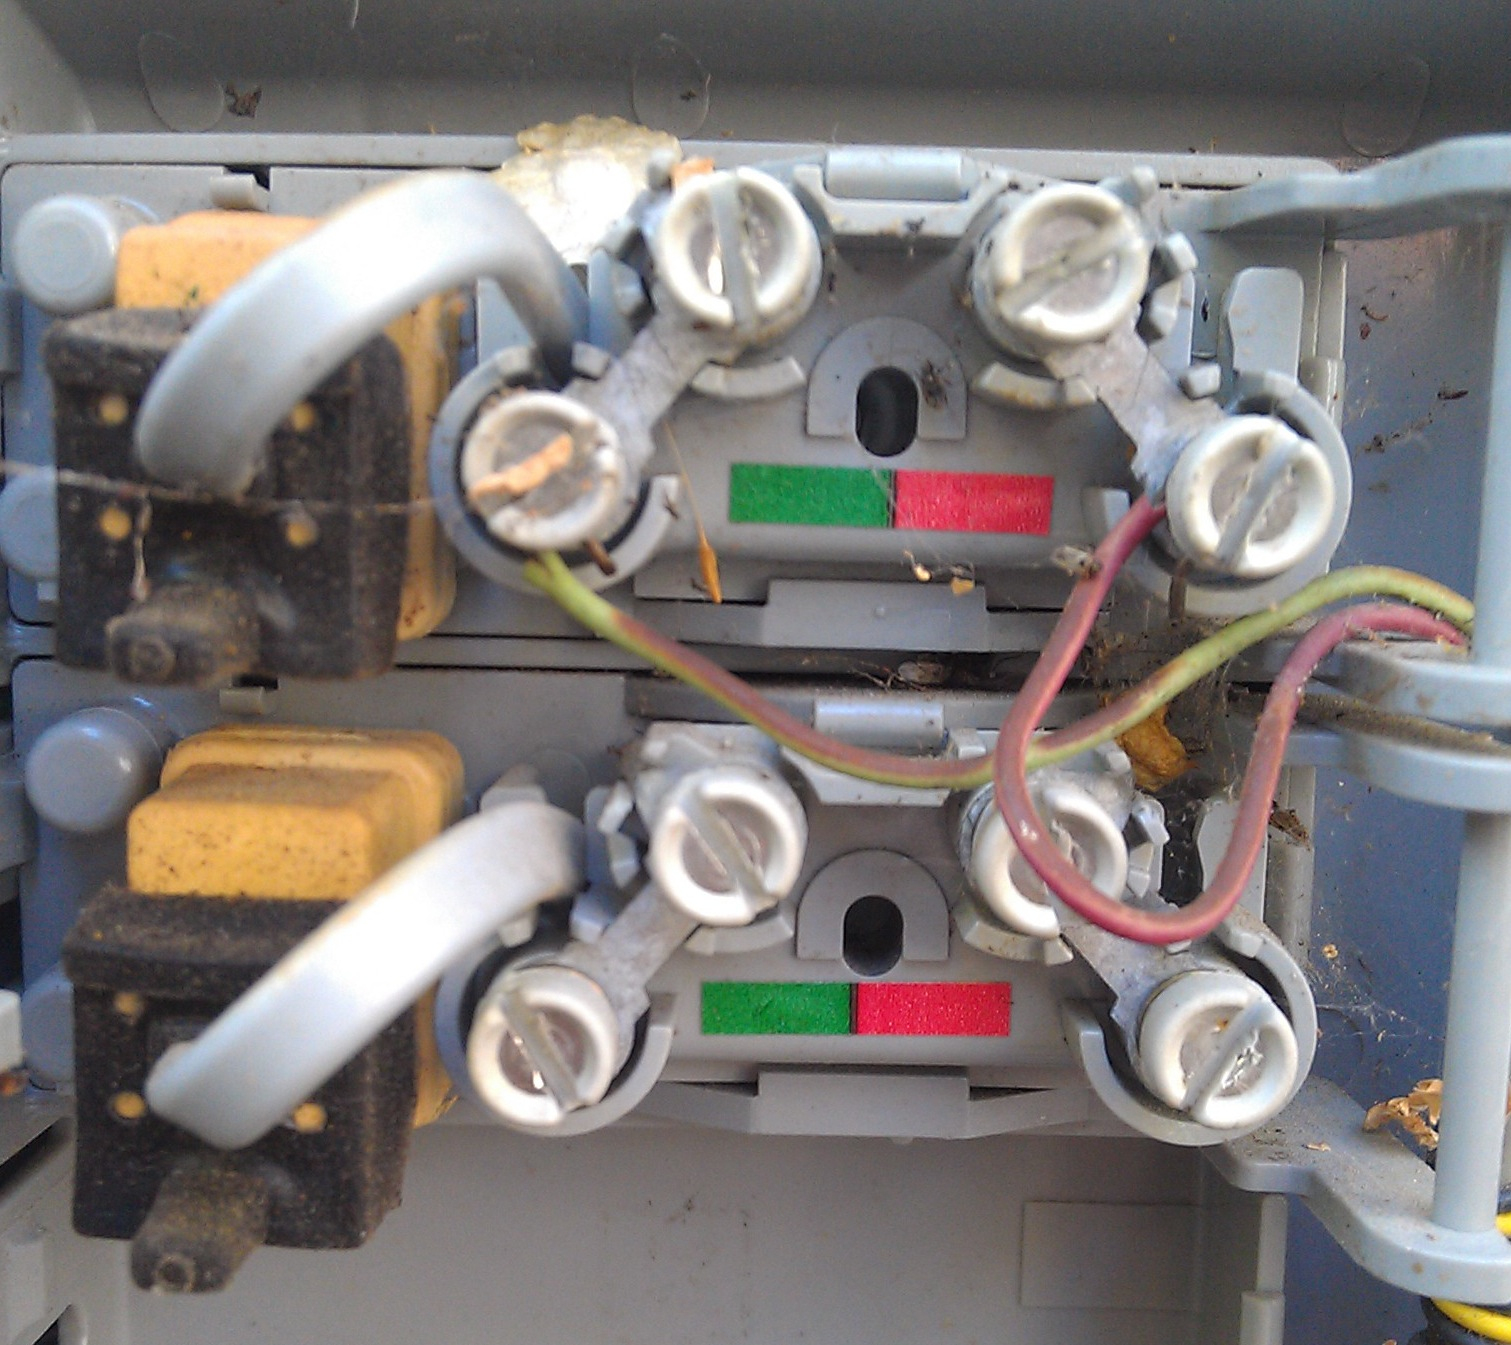 Wiring Outside Telephone Box - Wiring Diagrams Click - Telephone Junction Box Wiring Diagram